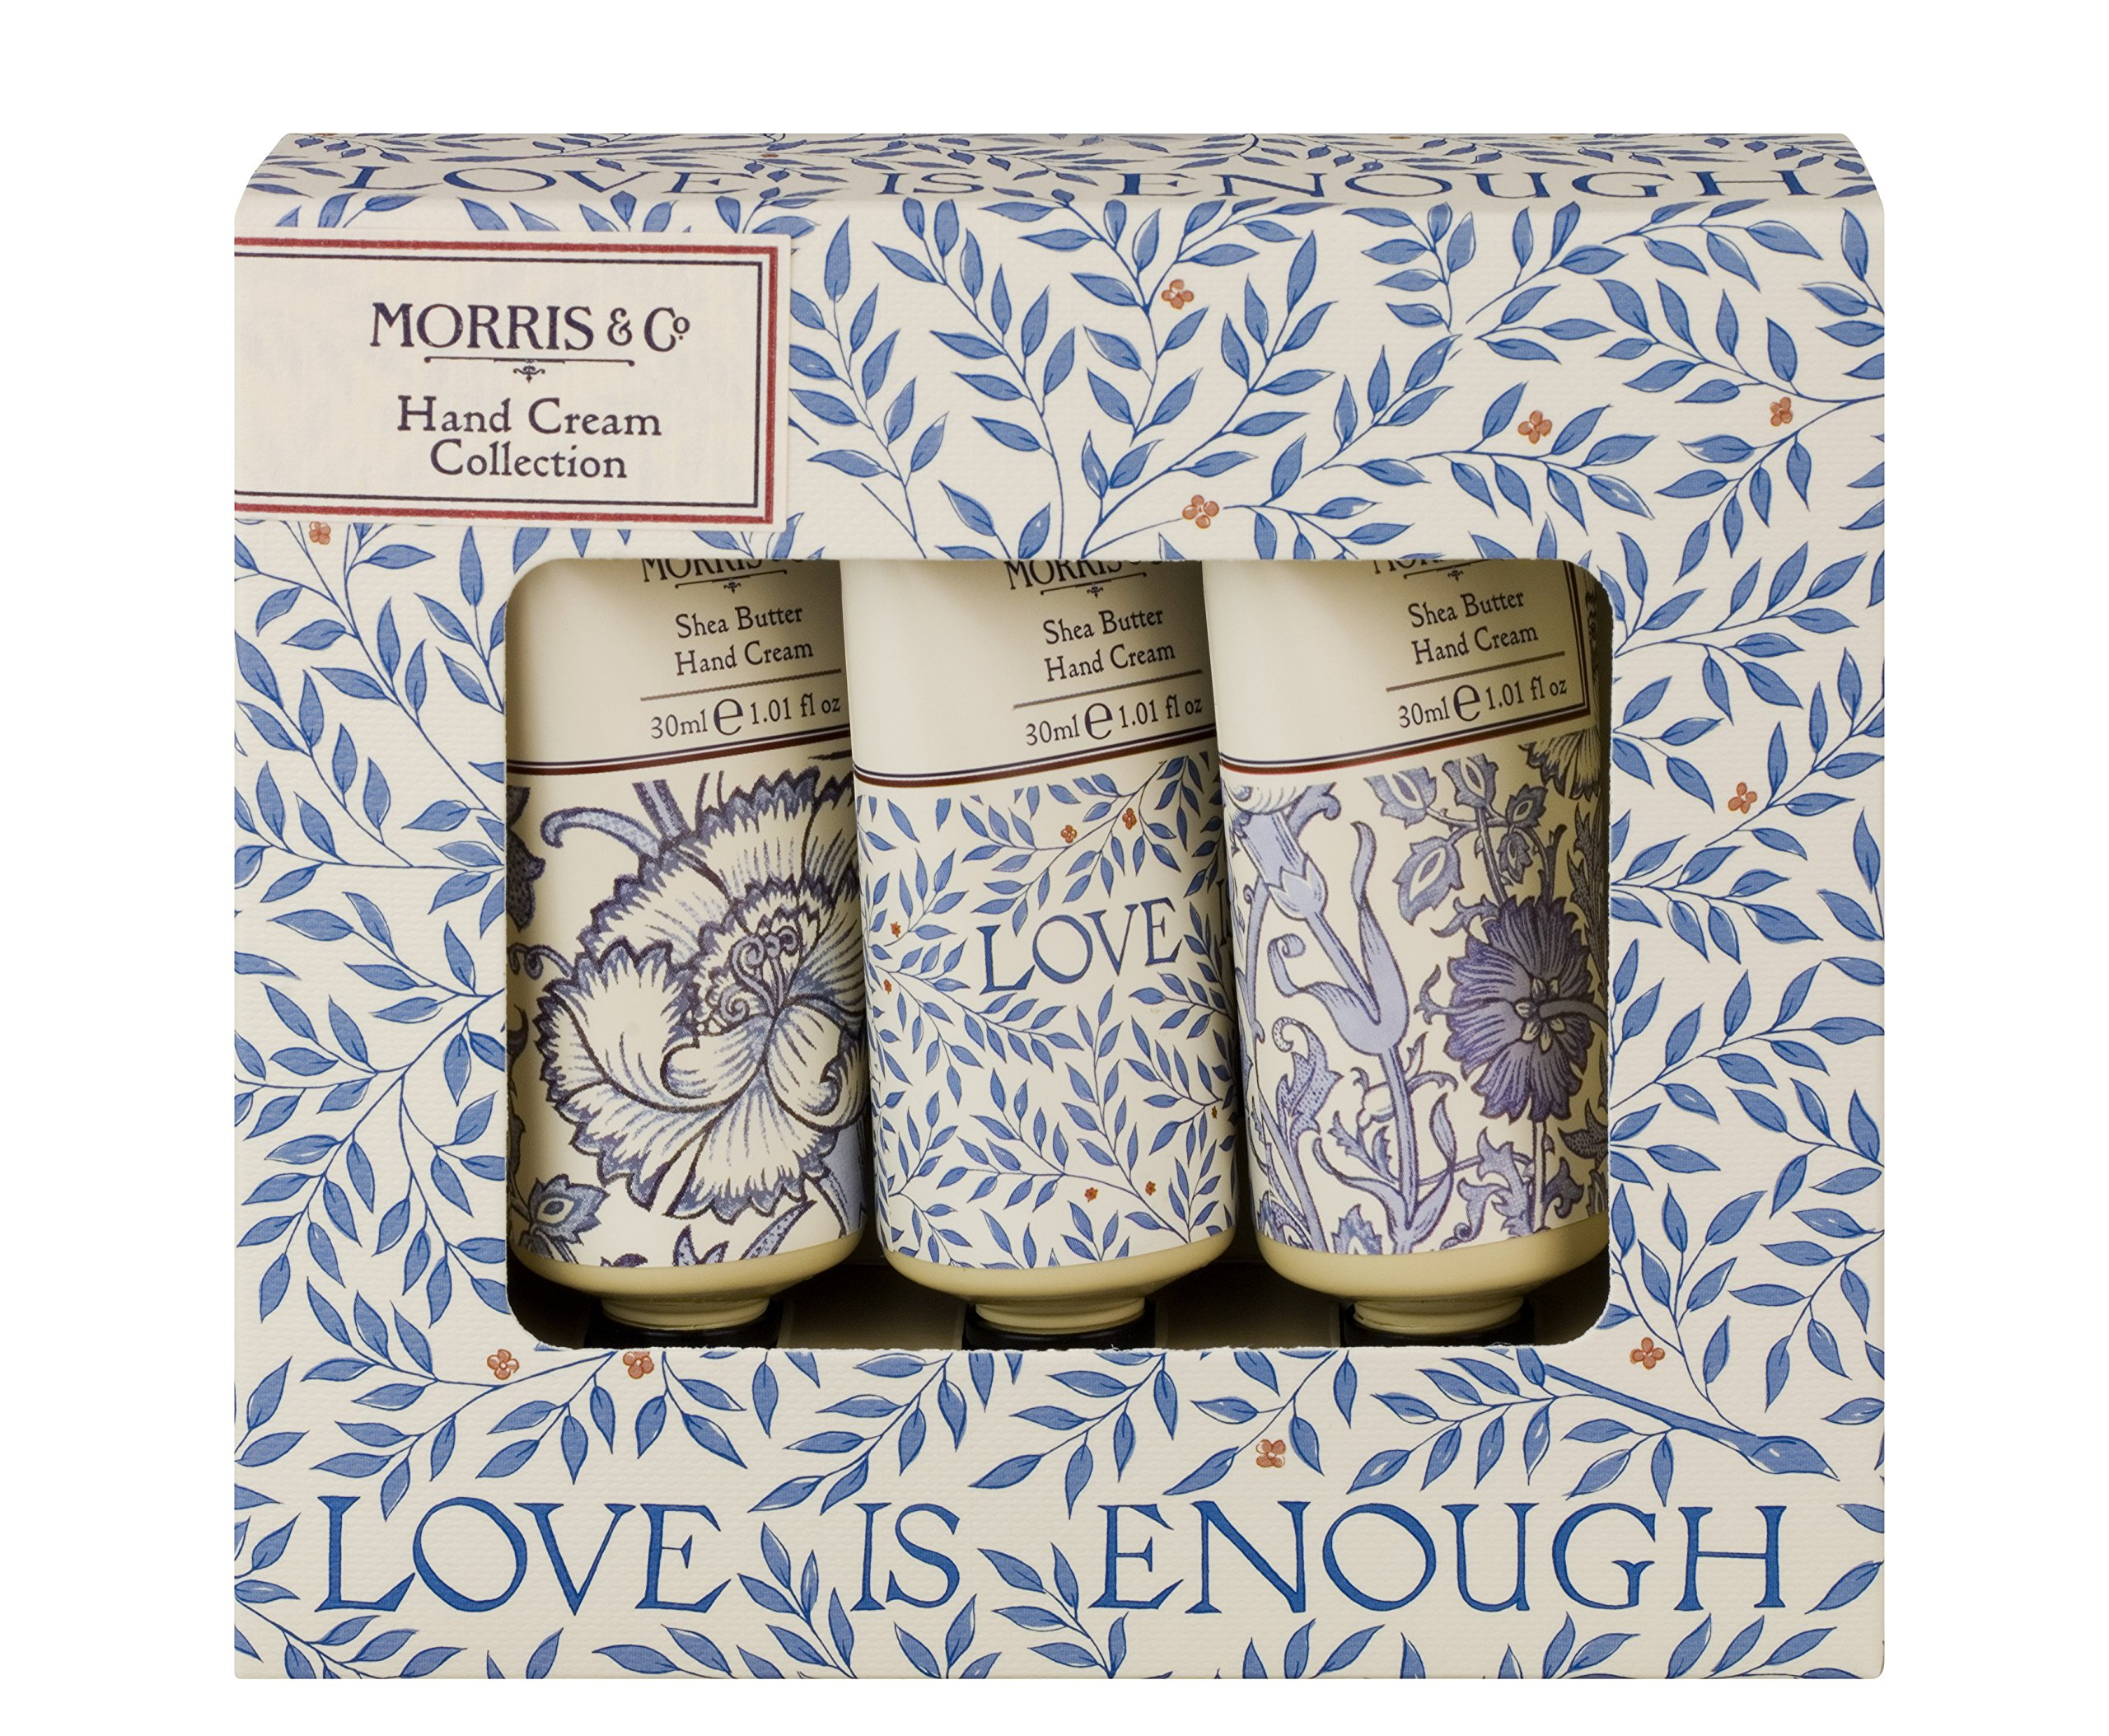 "Morris & Co – Colección de crema de manos""Love is Enough"", 30 ml, paquete de 3 unidades"